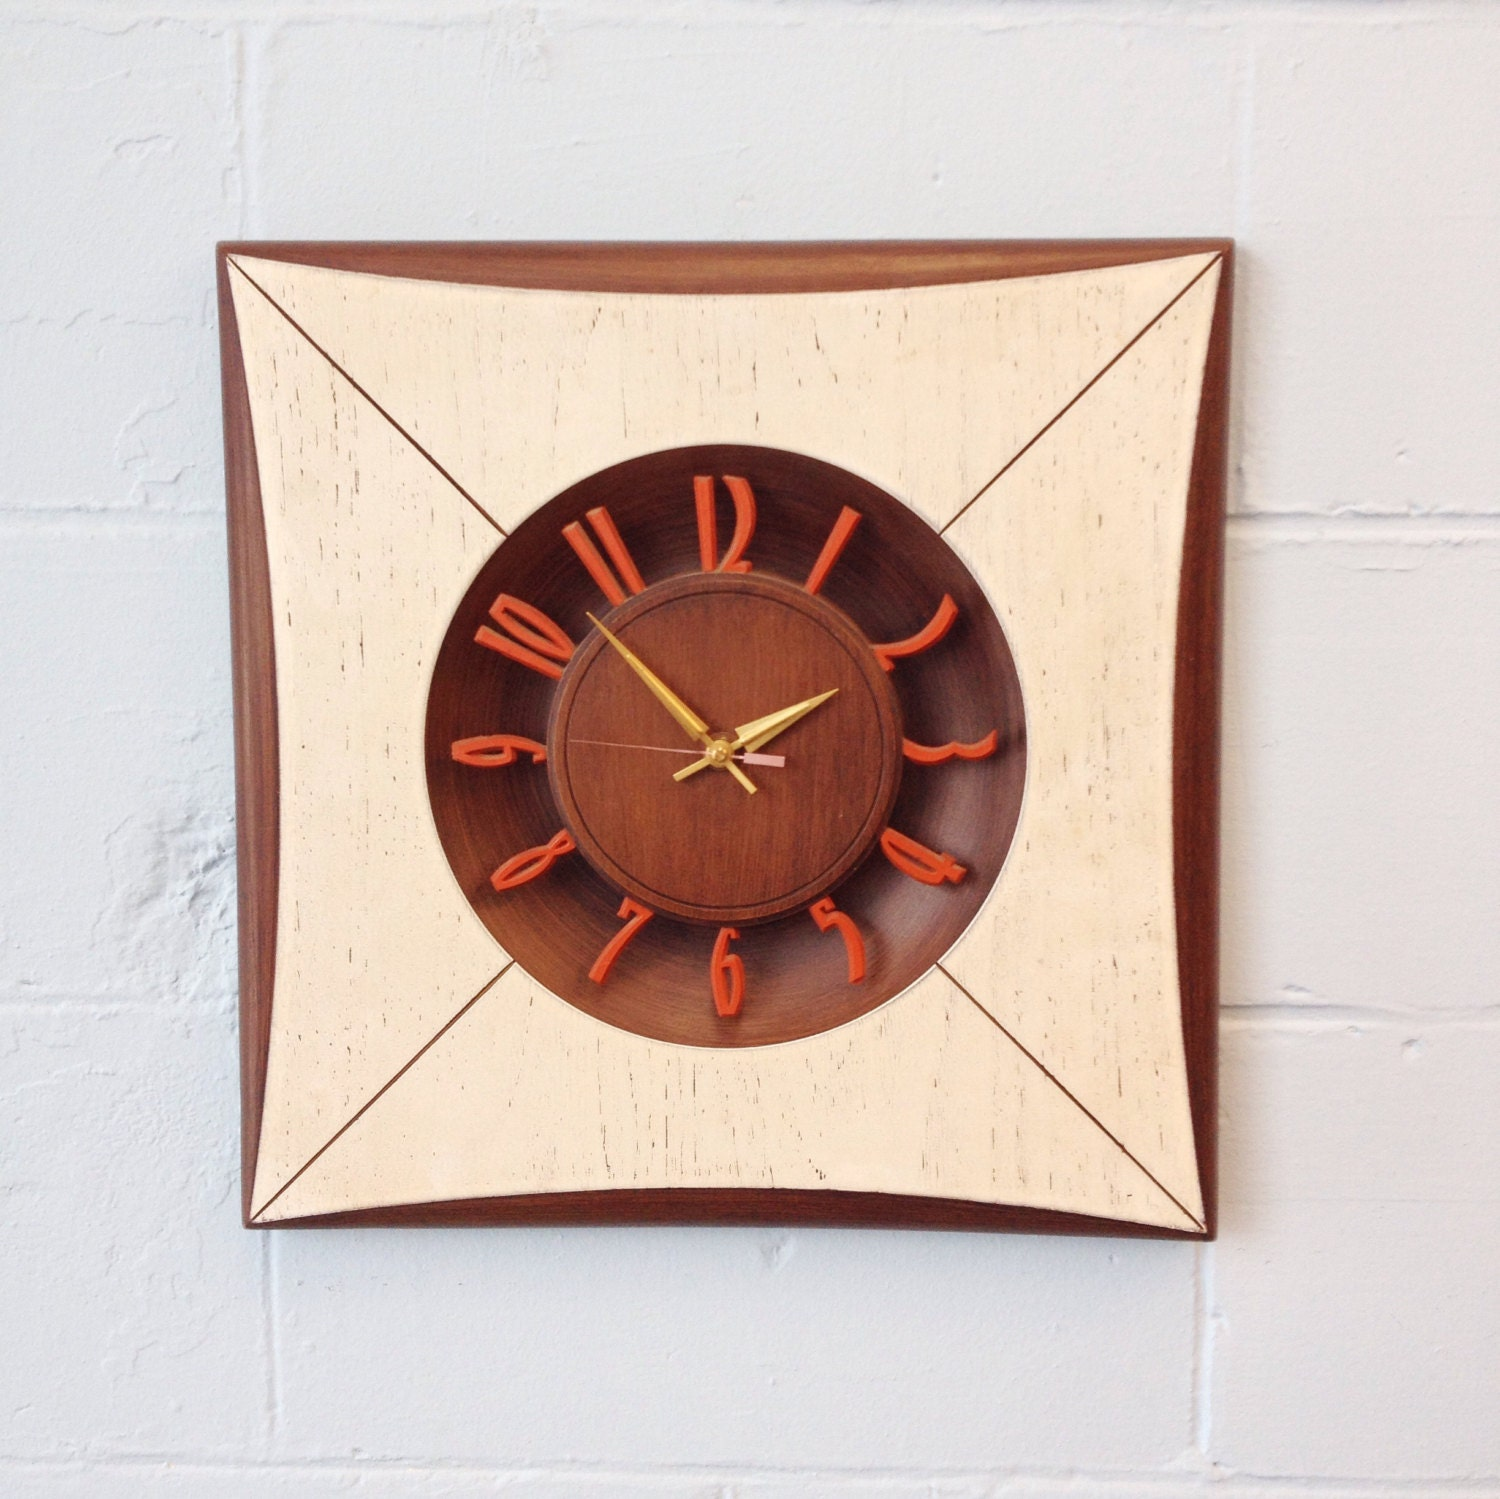 mid century modern wall clock by bemodernonline on etsy. Black Bedroom Furniture Sets. Home Design Ideas